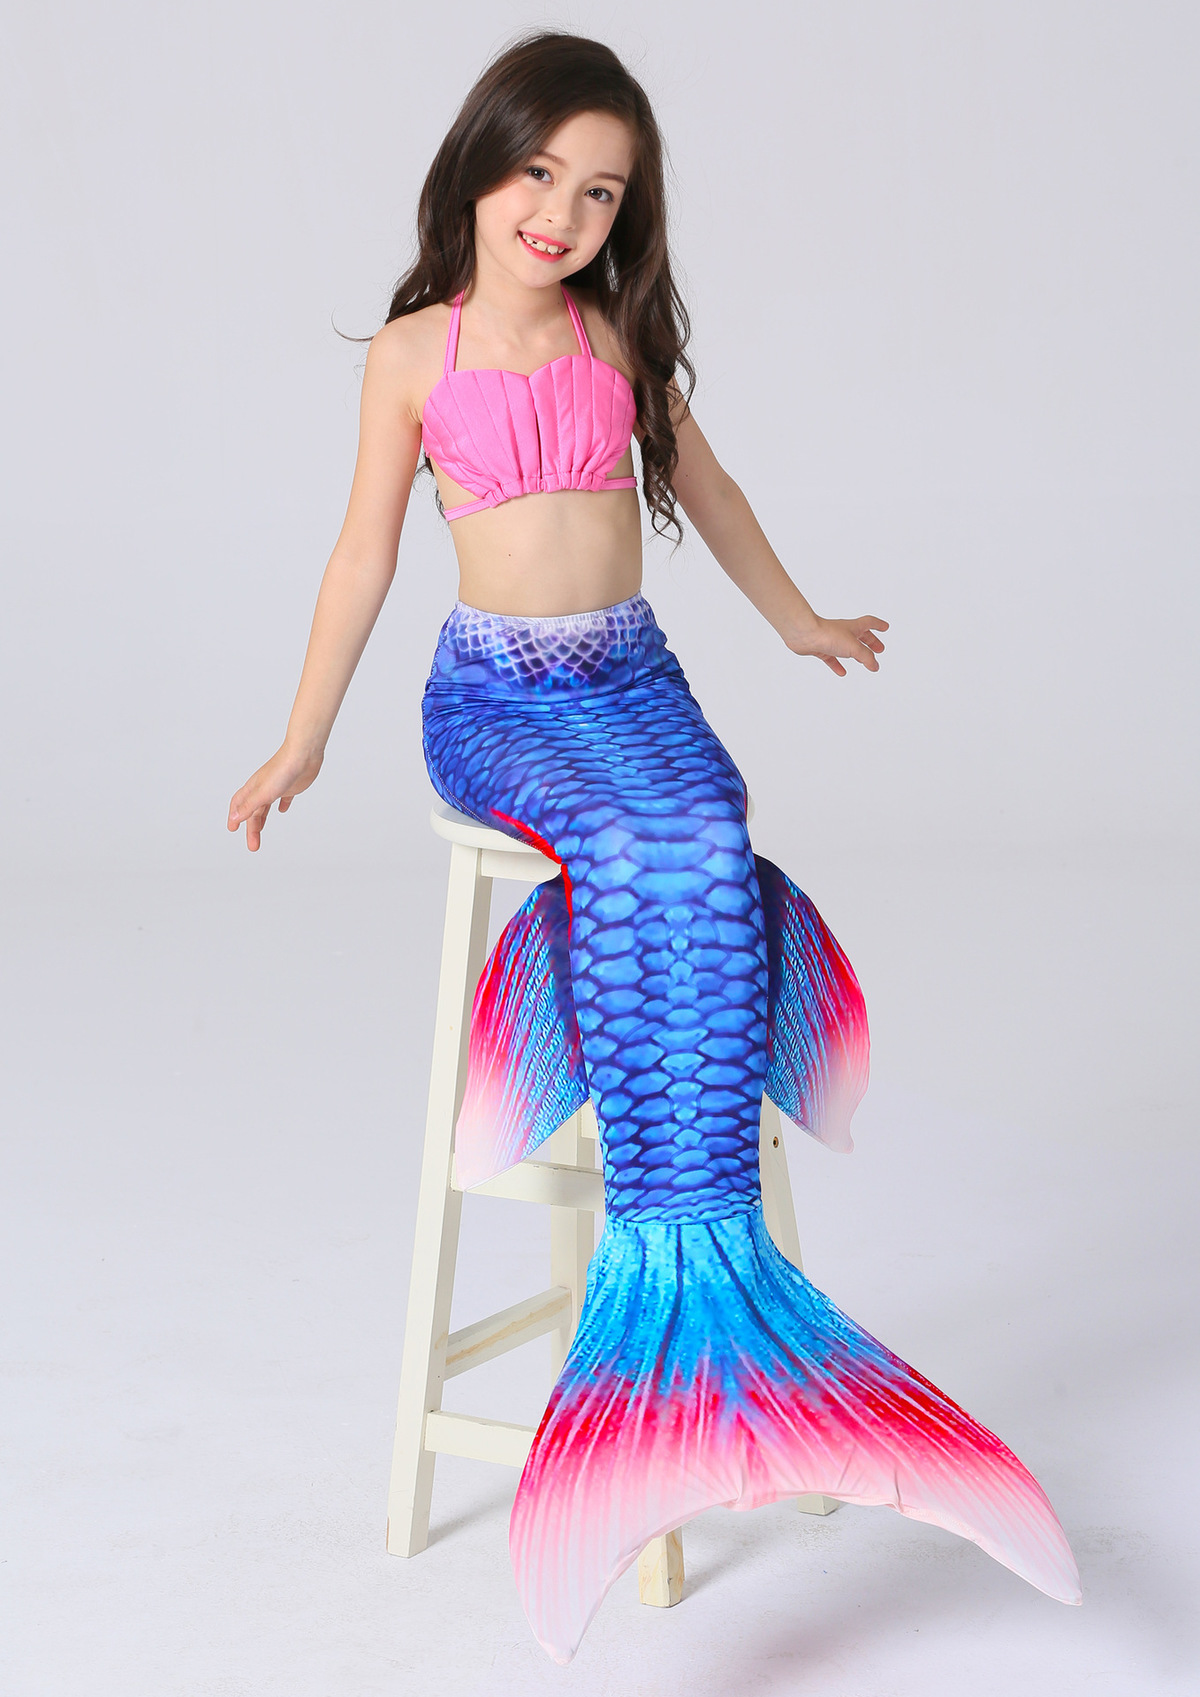 Mother & Kids Children Little Girls Mermaid Tail Tails For Swimming Women Adult Costume Swimmable Kids For Adults Party Swimsuit Bathing Suit